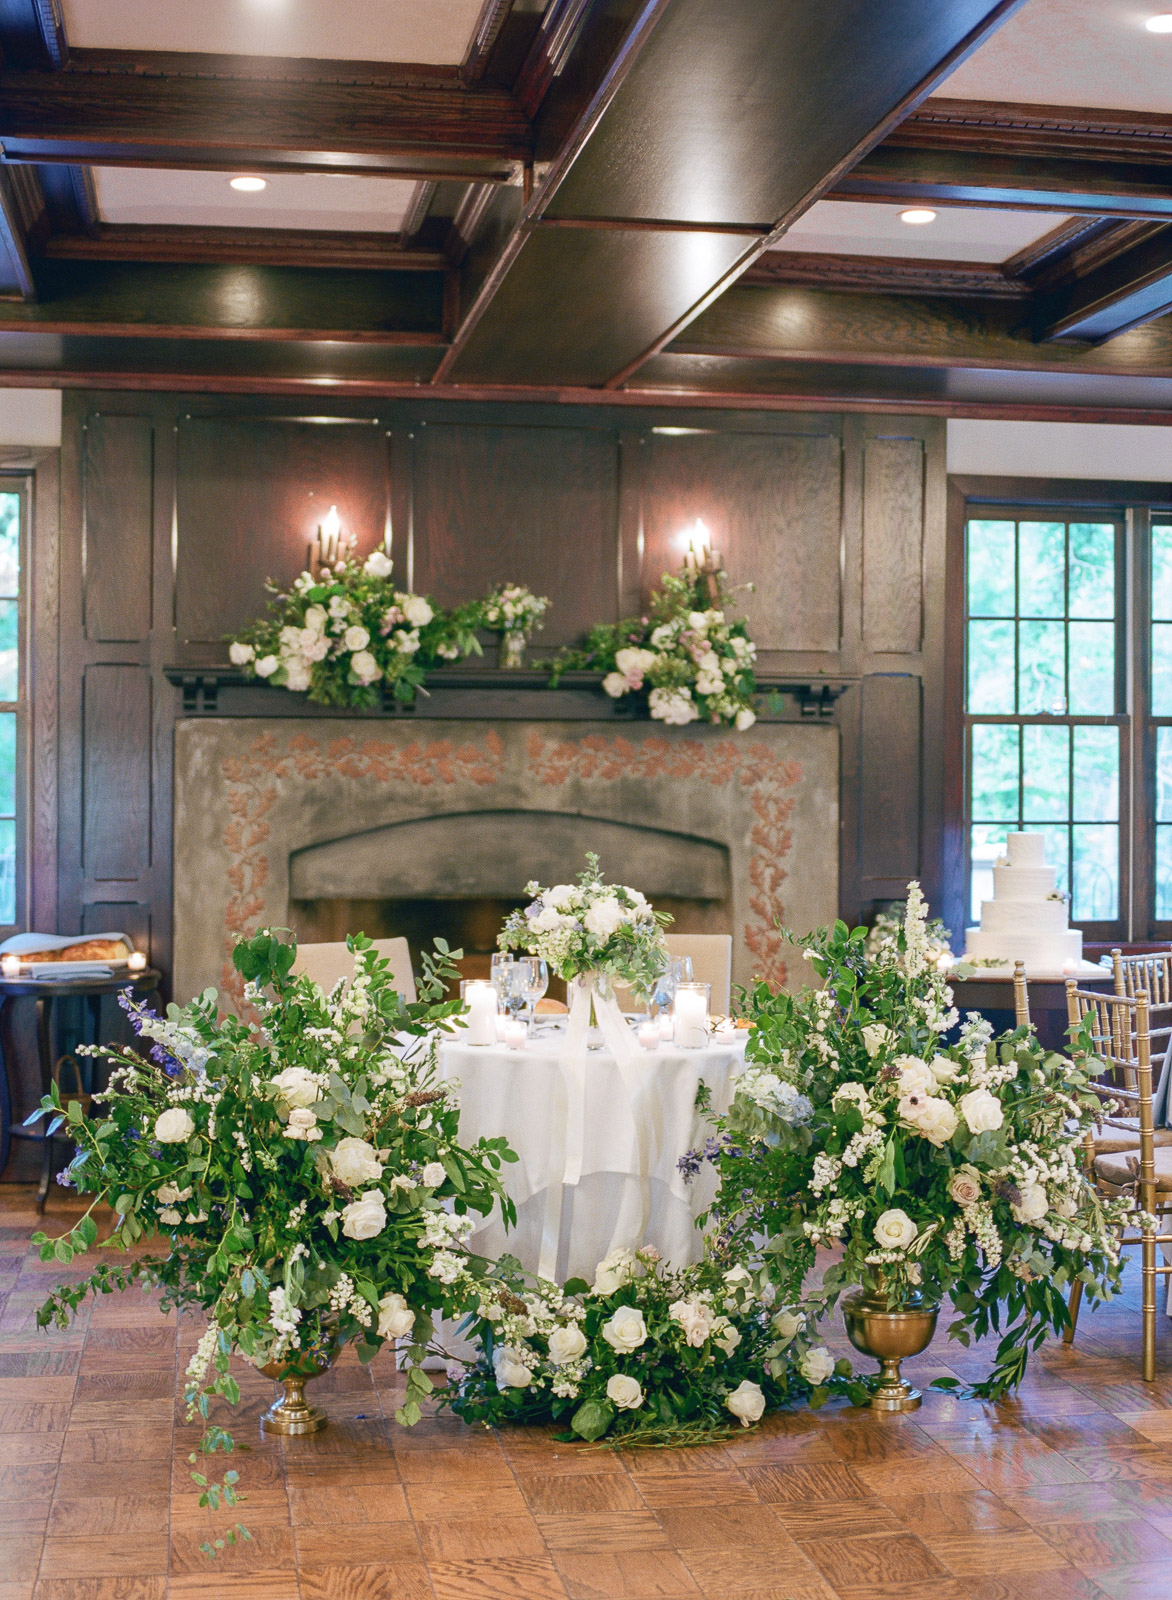 Fireplace floral design at Hotel du Village wedding in New Hope PA by Twisted Willow Flowers